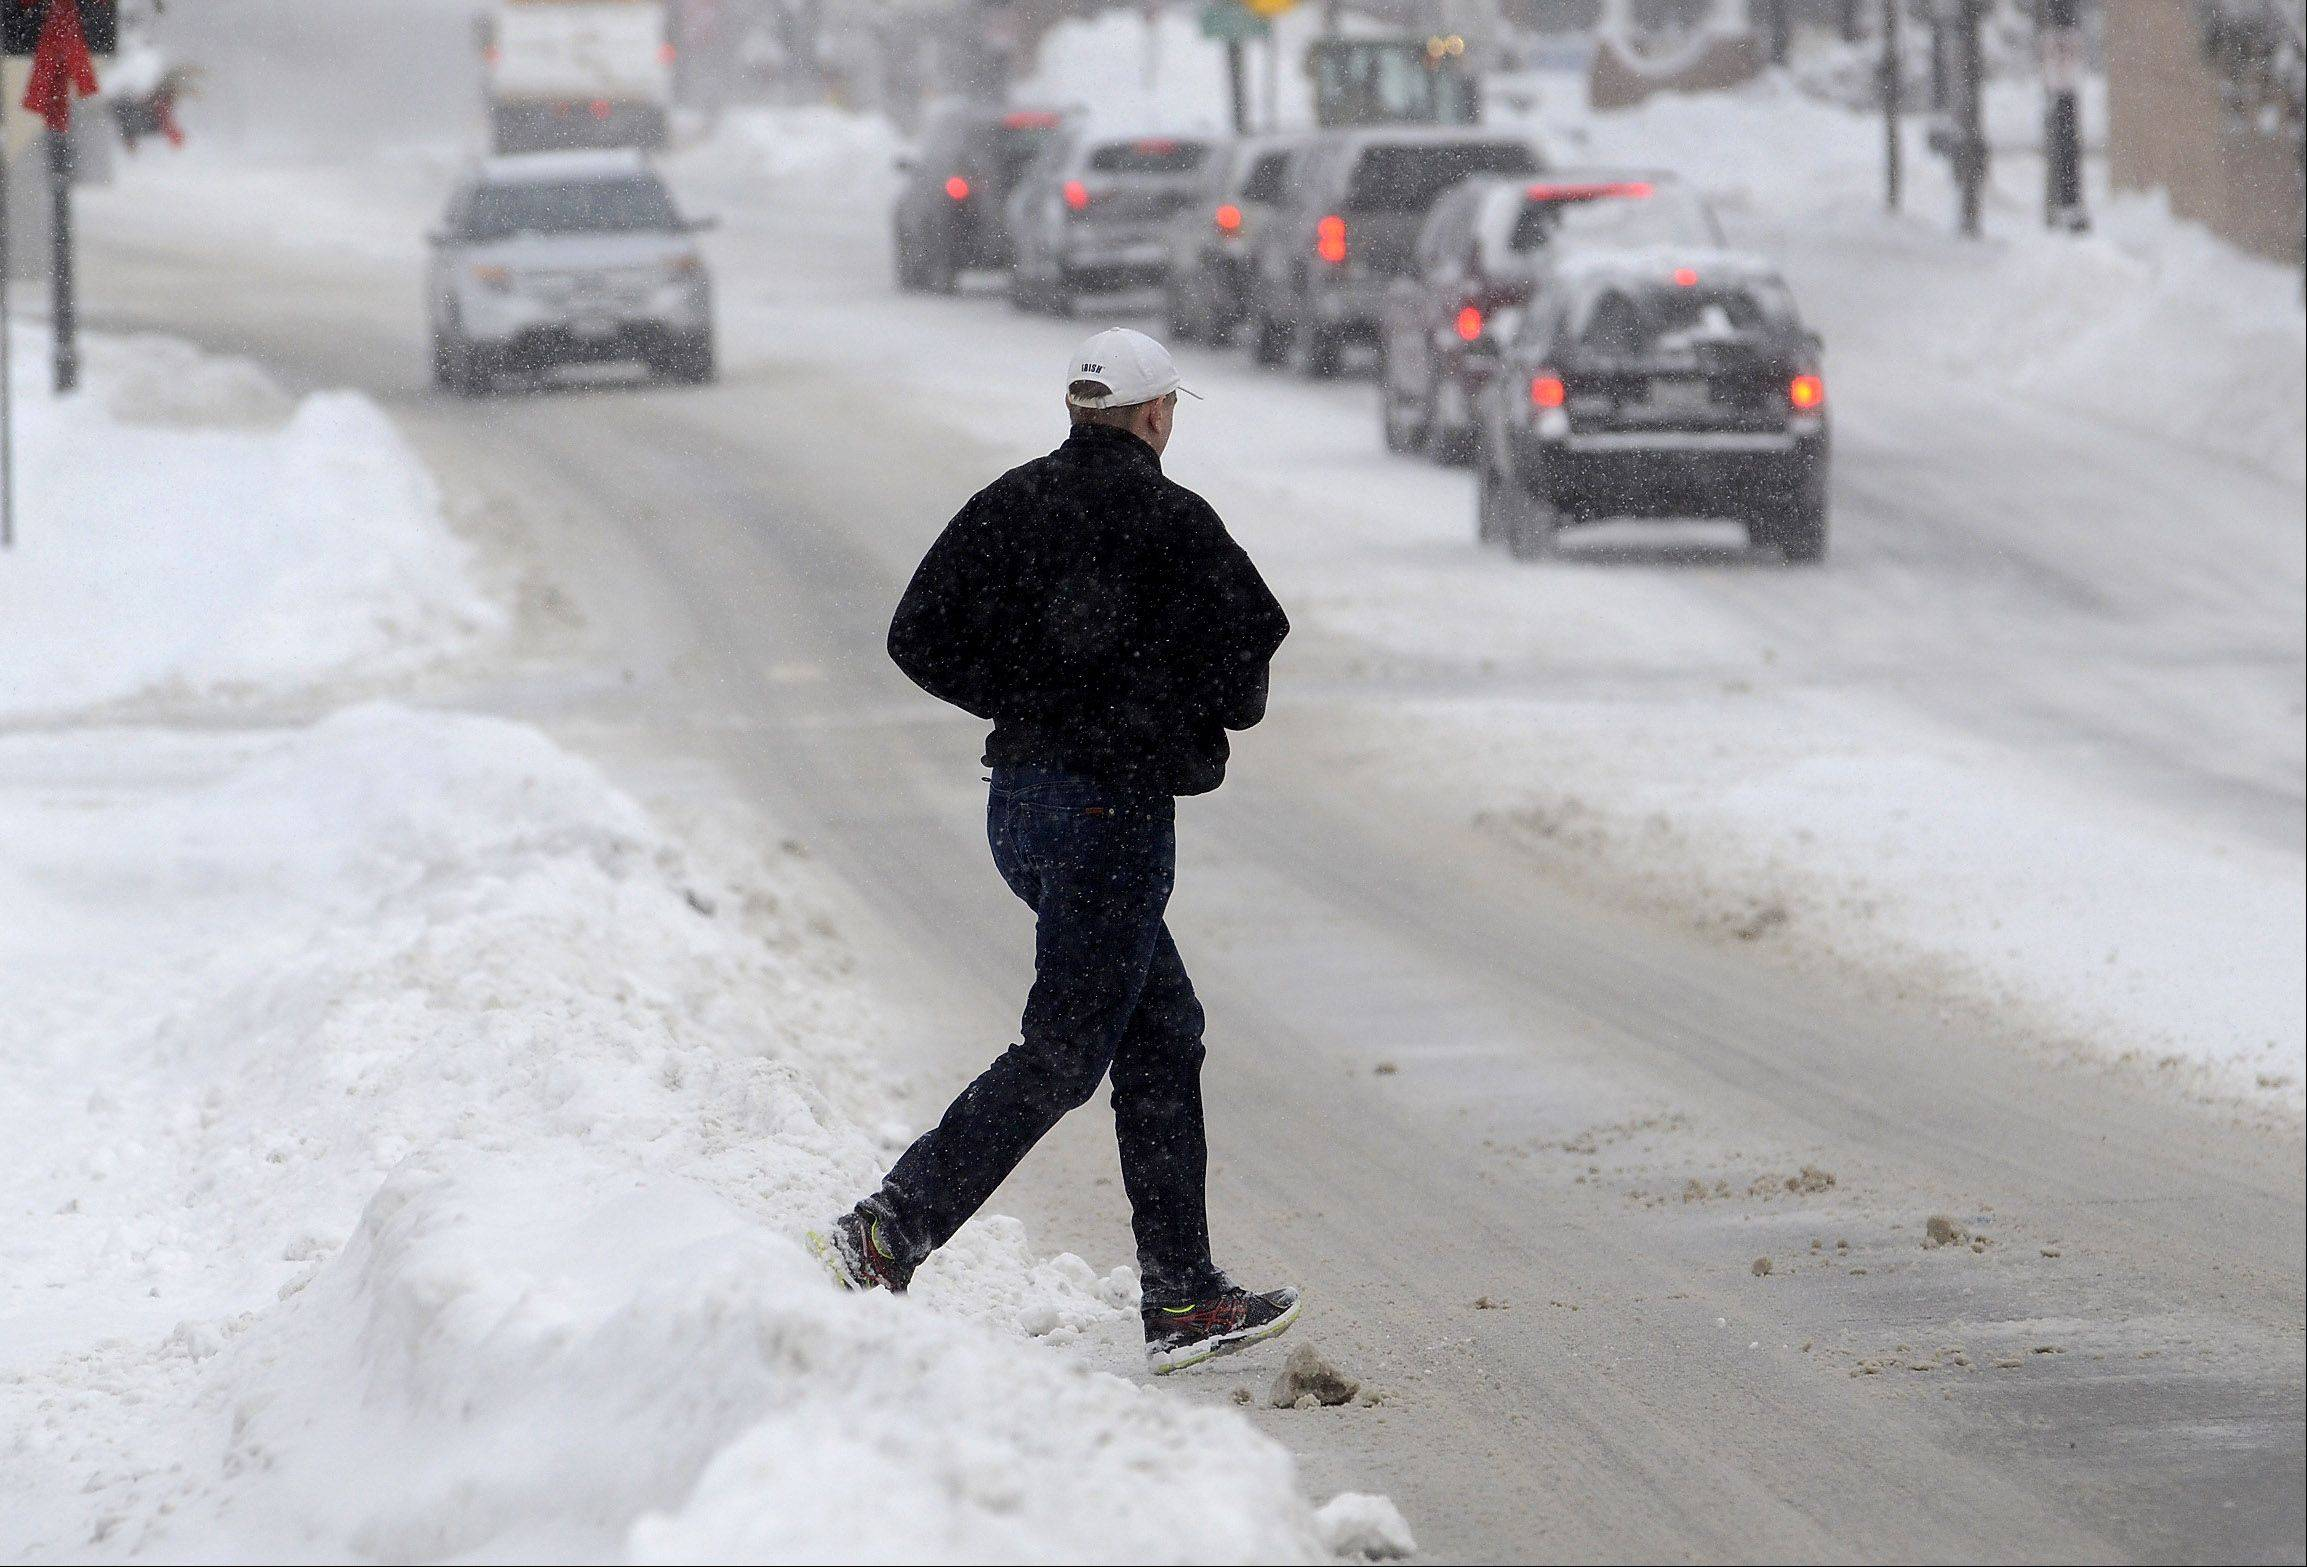 Pedestrians took to the streets in downtown Barrington Thursday morning, as sidewalks were still not totally cleared after 10 inches of snow fell since Wednesday.